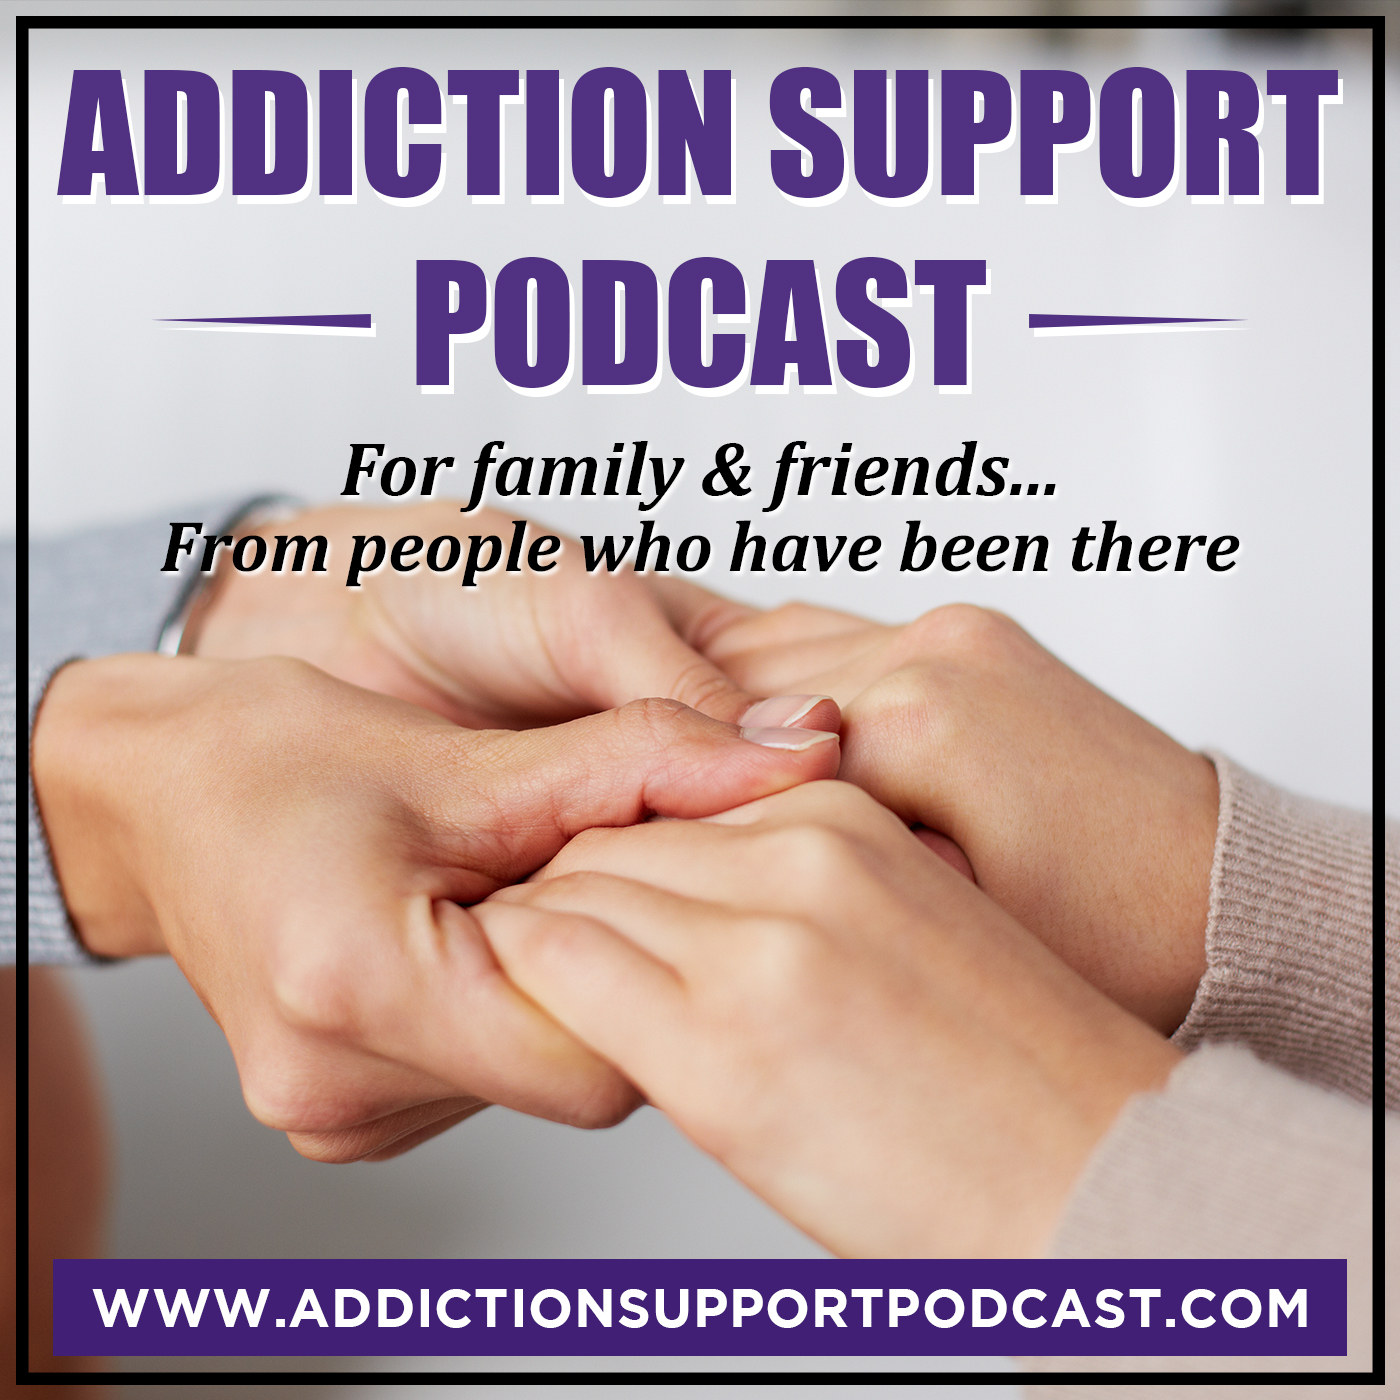 Addiction Support Podcast: Addiction Support for Family & Friends, From People Who Have Been There | Melissa Sue Tucker